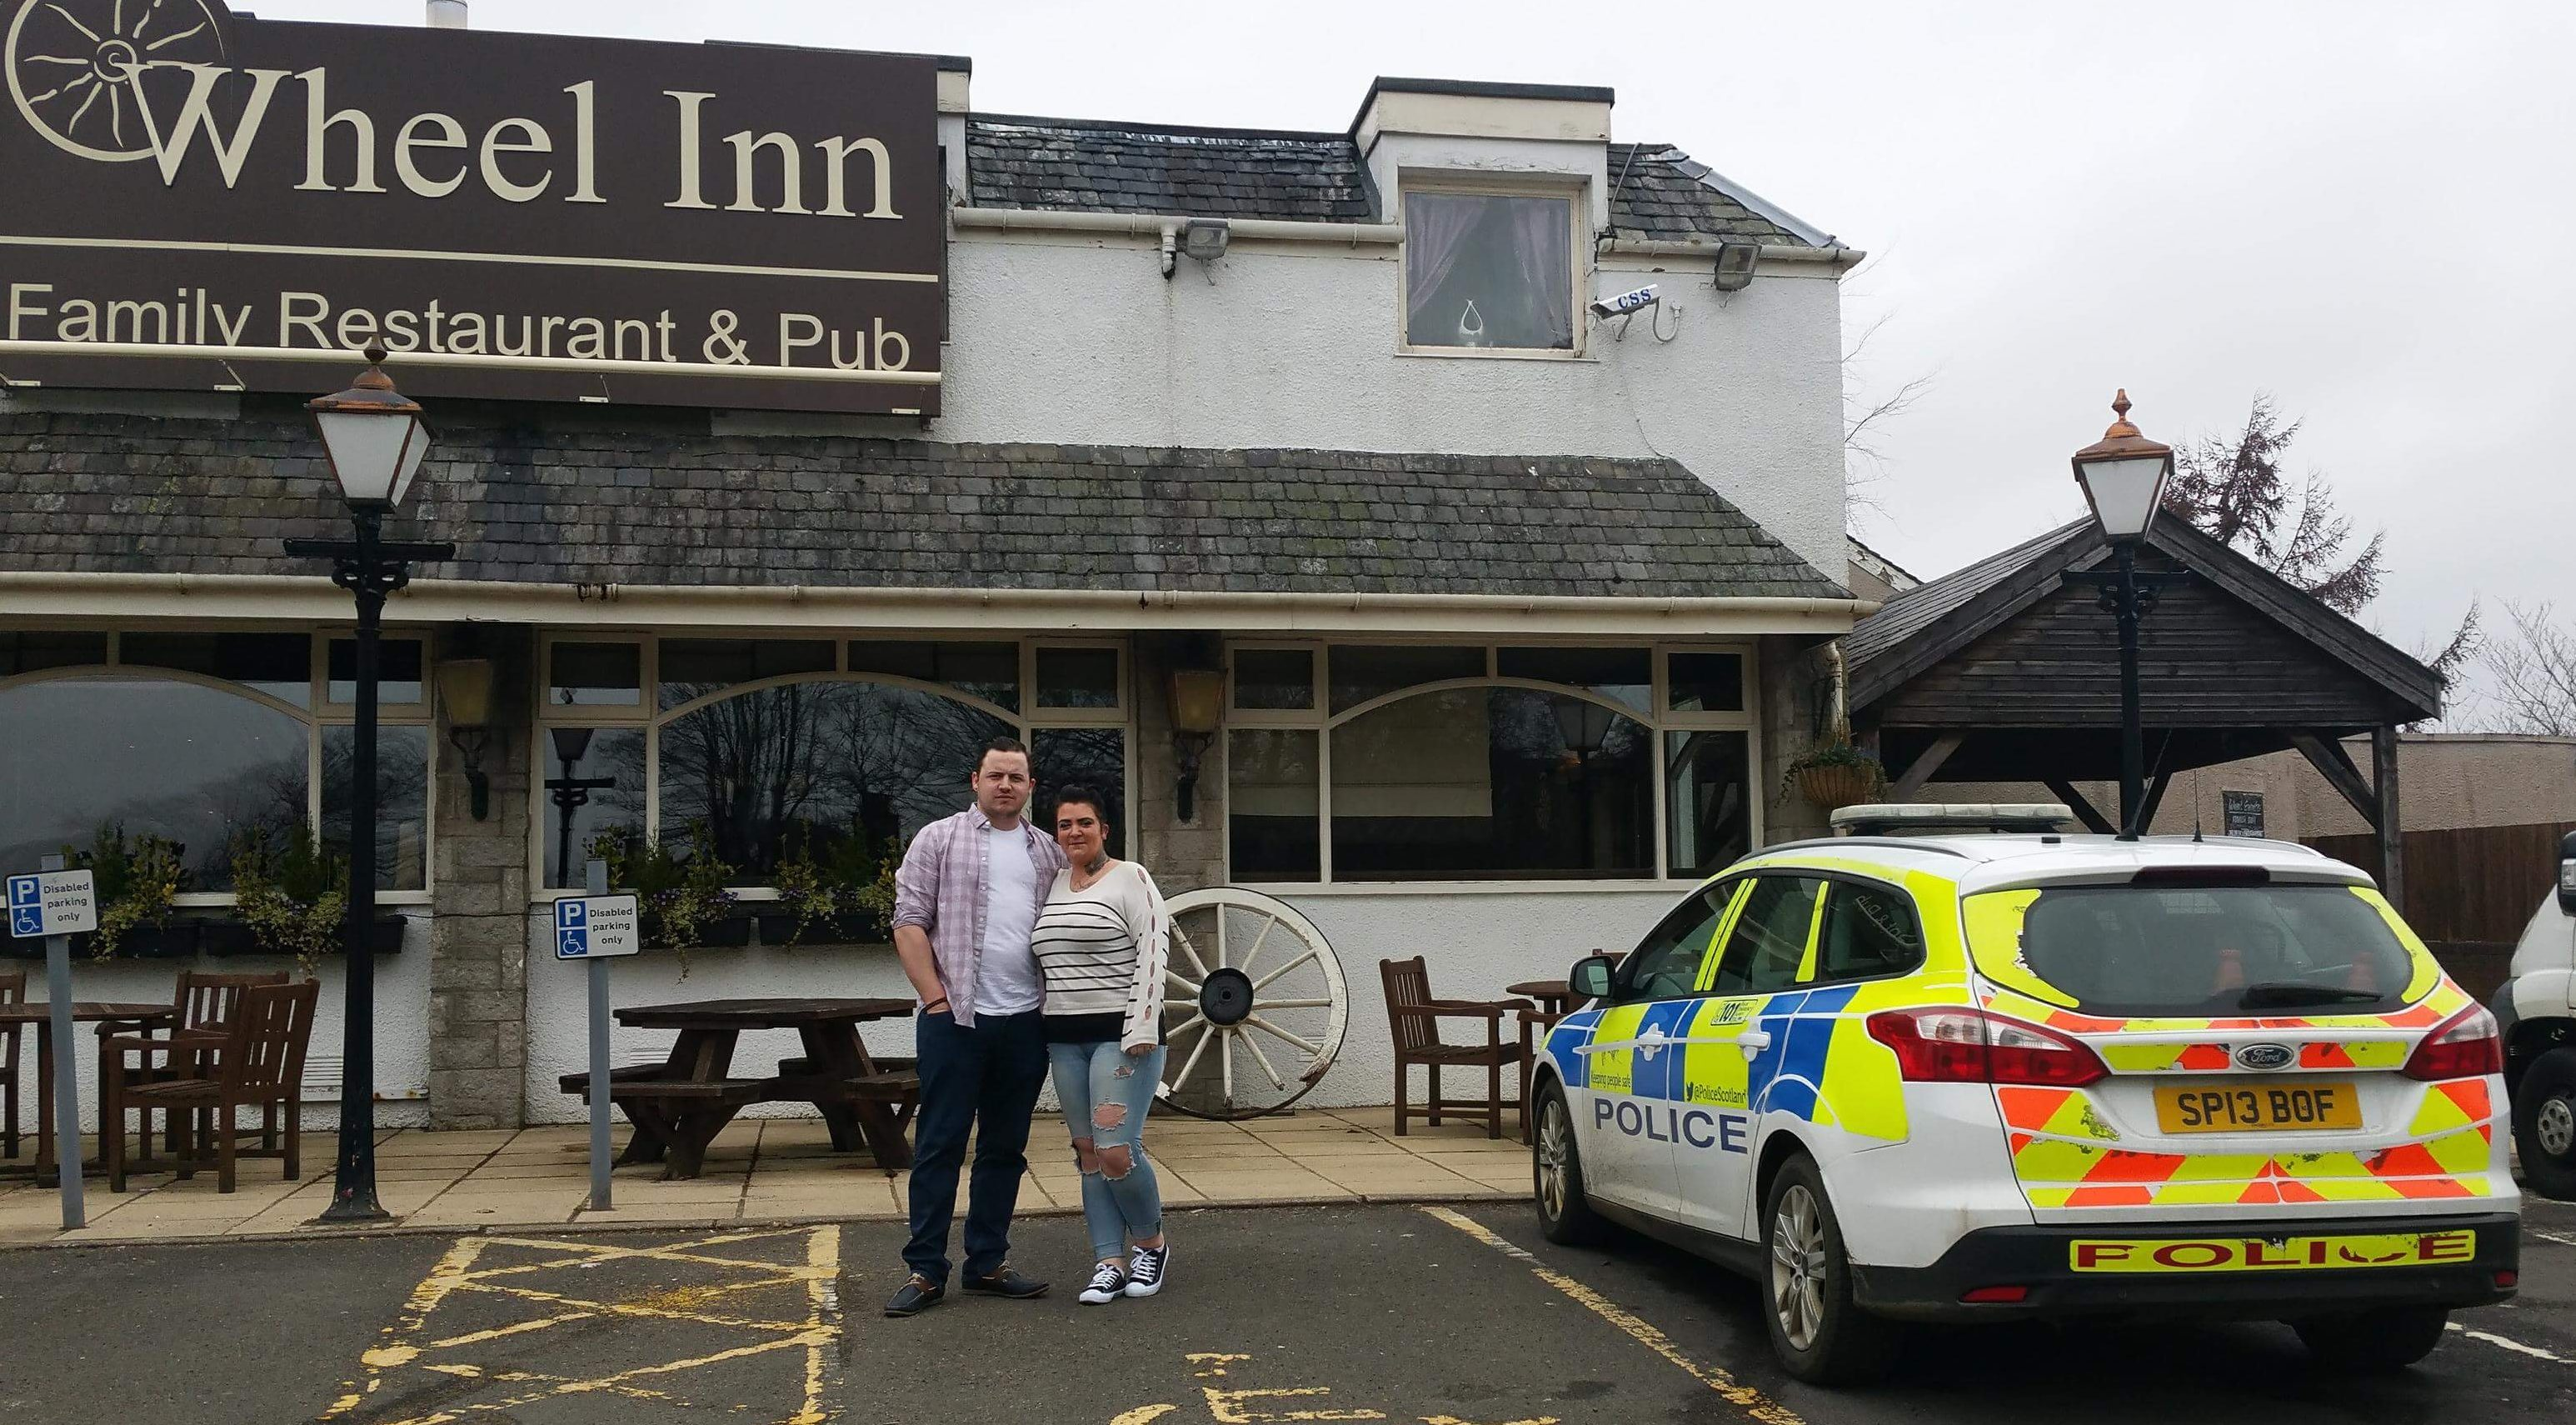 Shaun and Shannon Campbell outside the Wheel Inn.